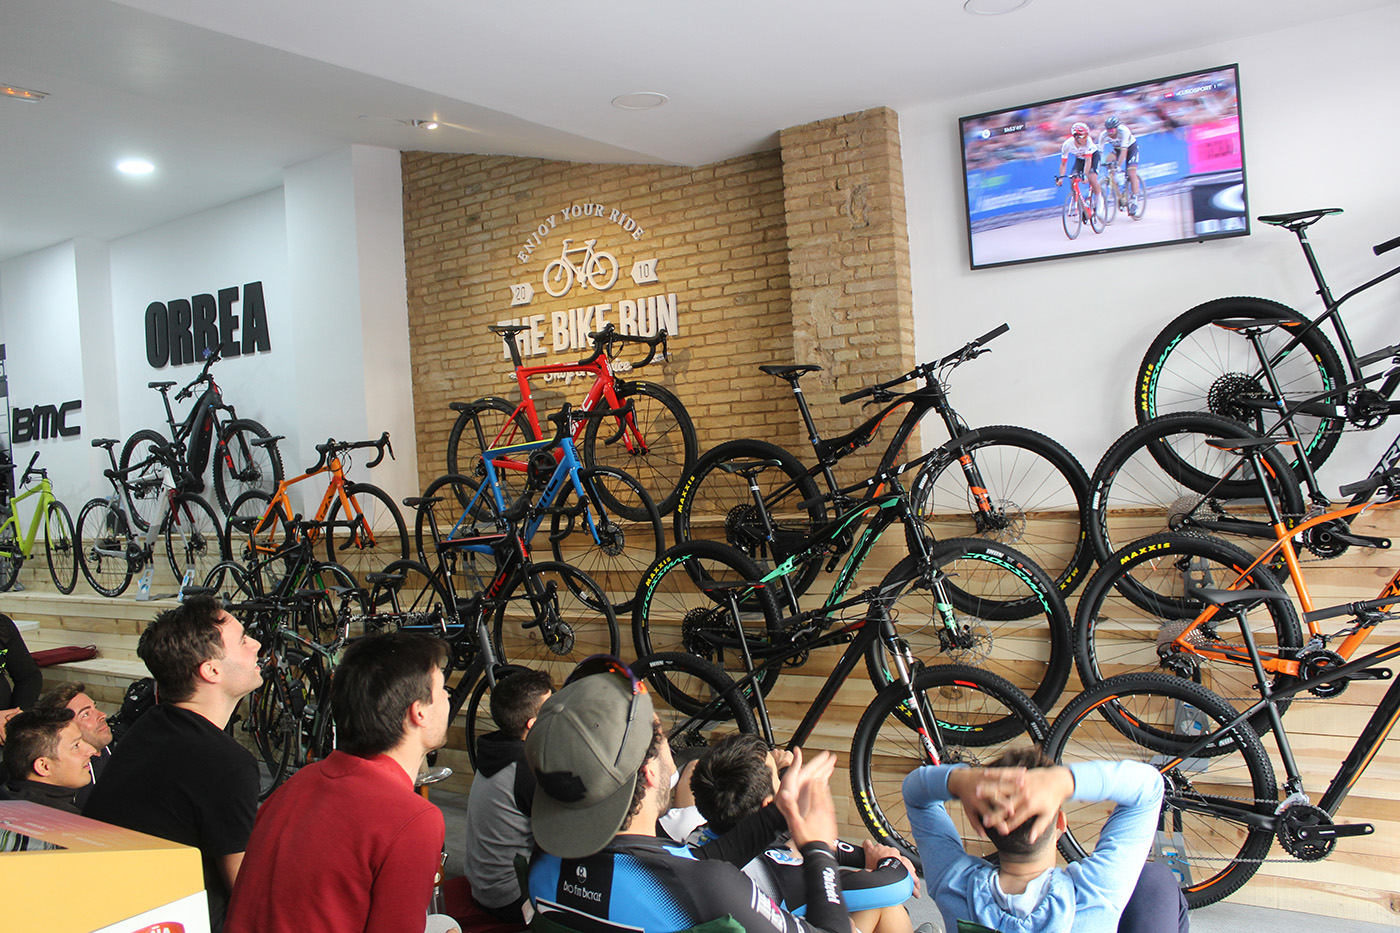 Tienda especializada en cinismo, The Bike Run